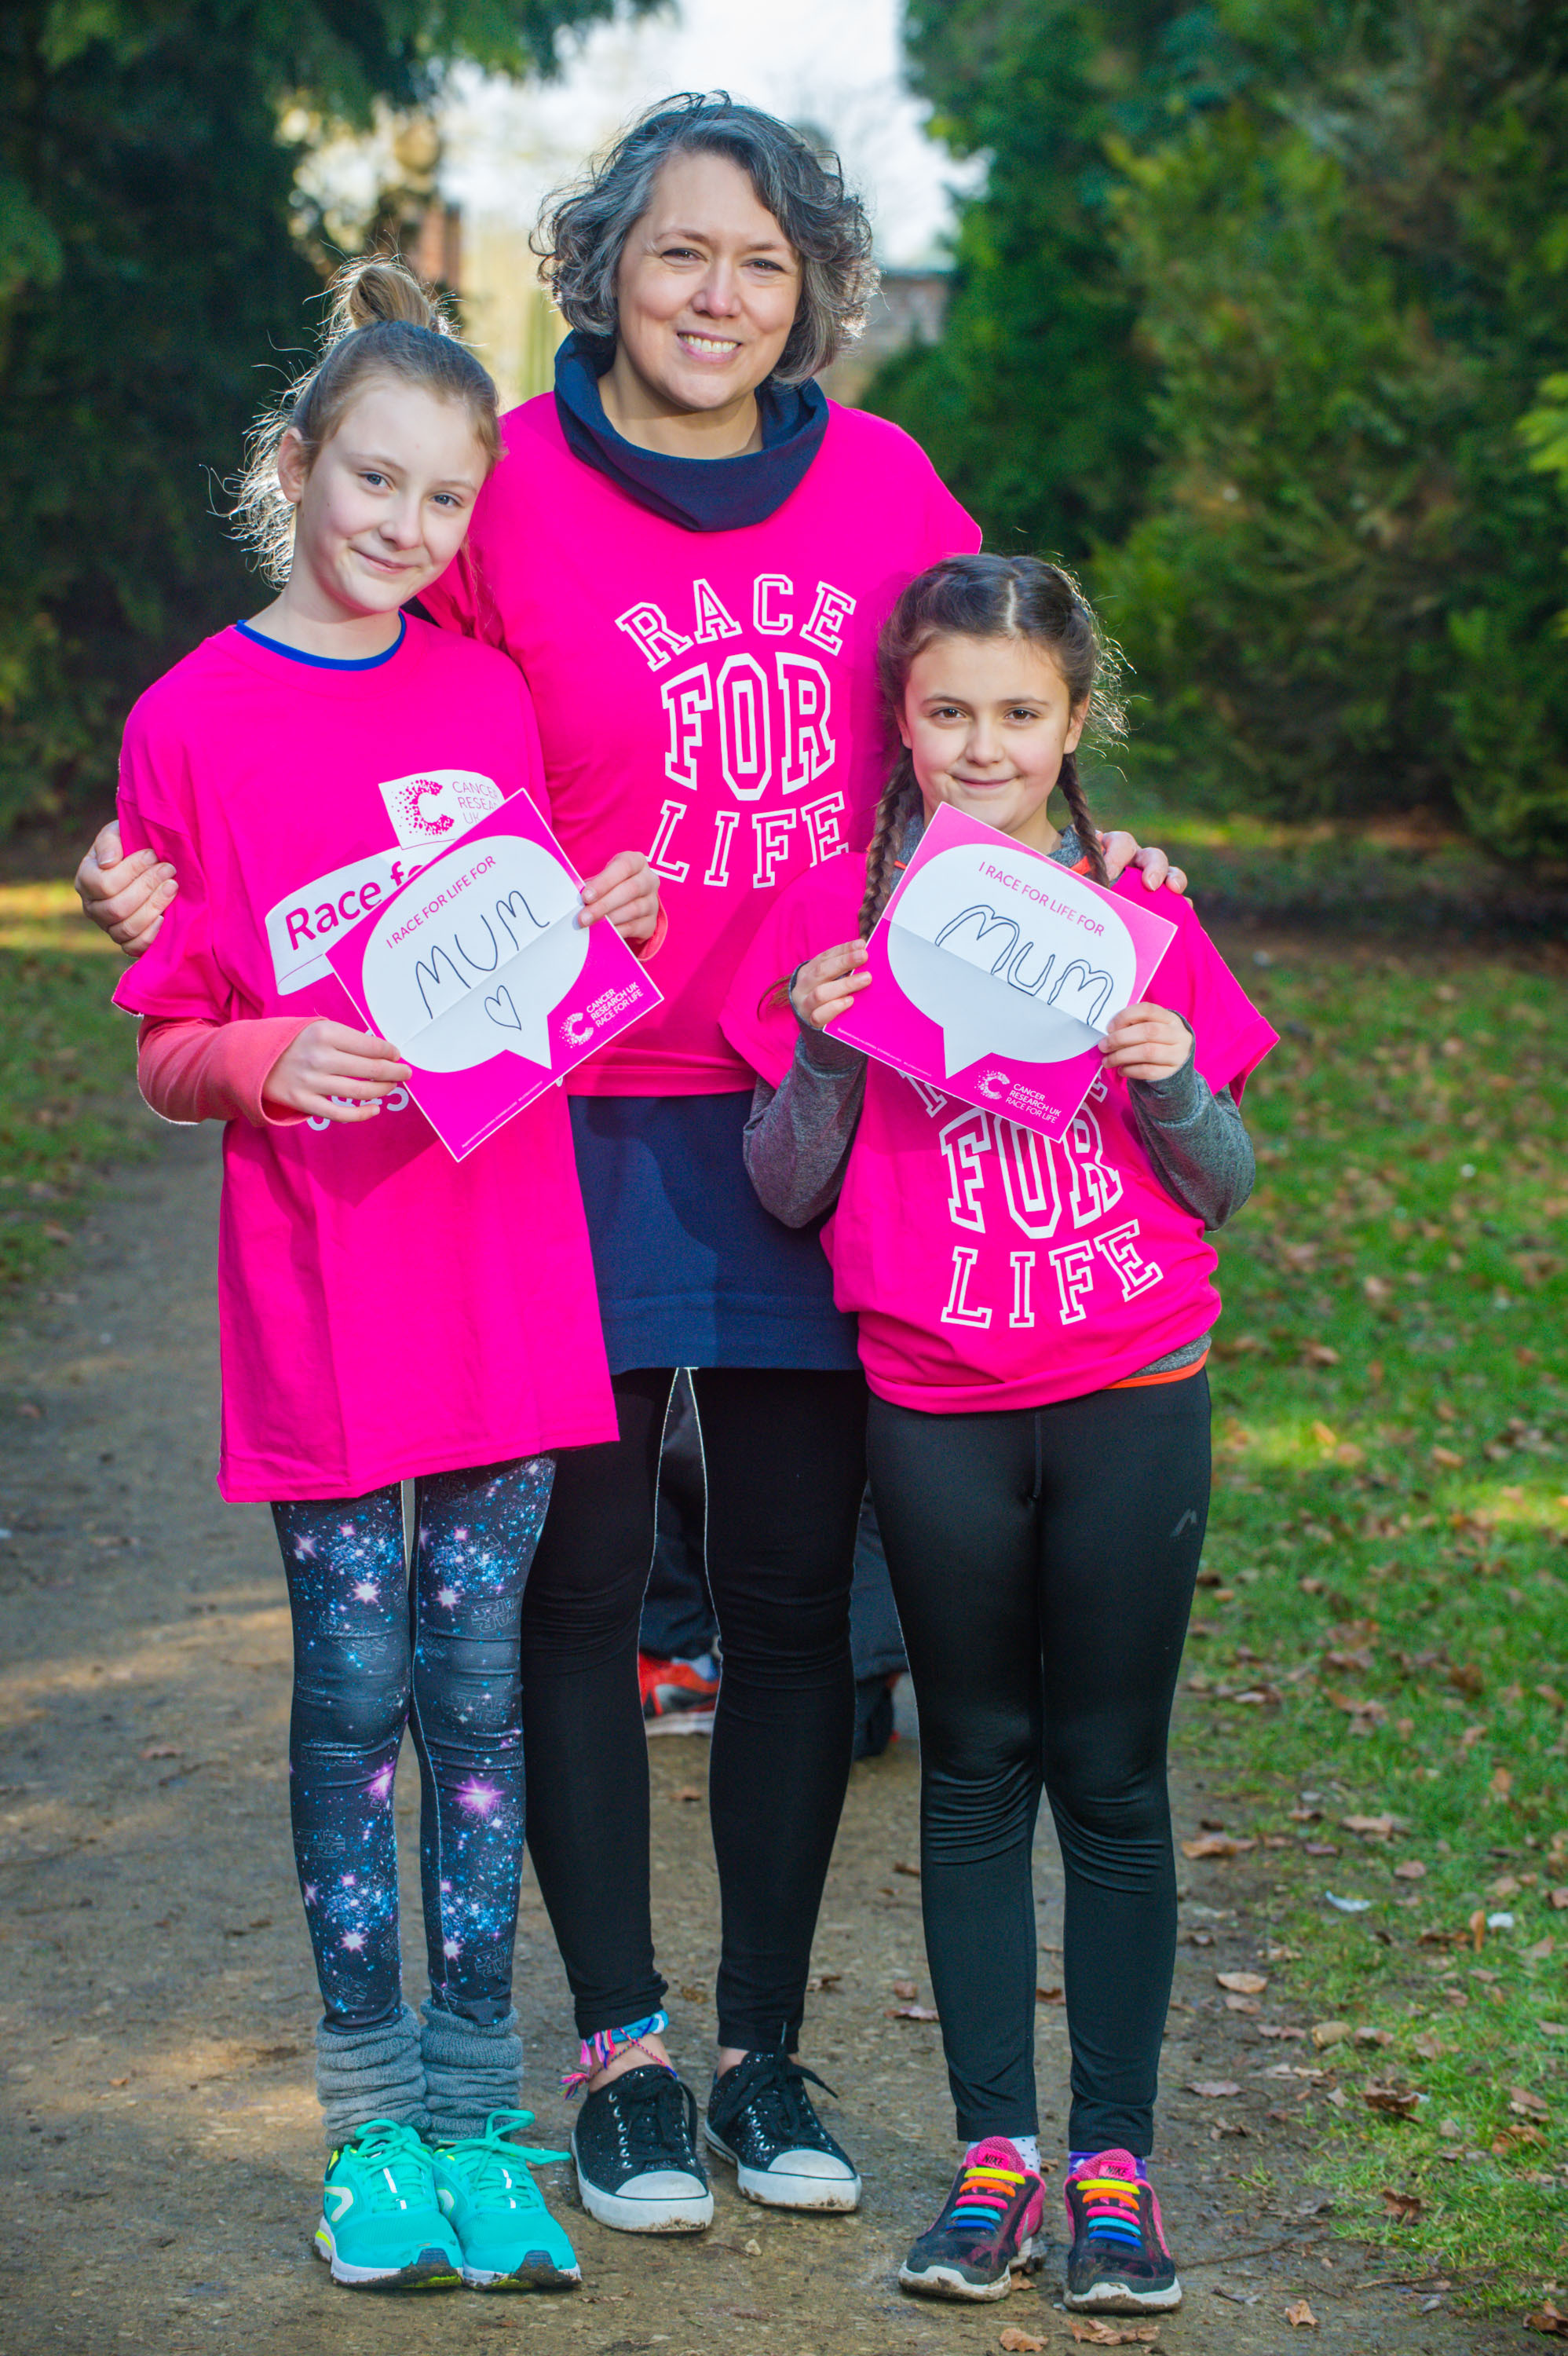 Brave Wootton Bassett Mum finishes race for life after her own cancer battle